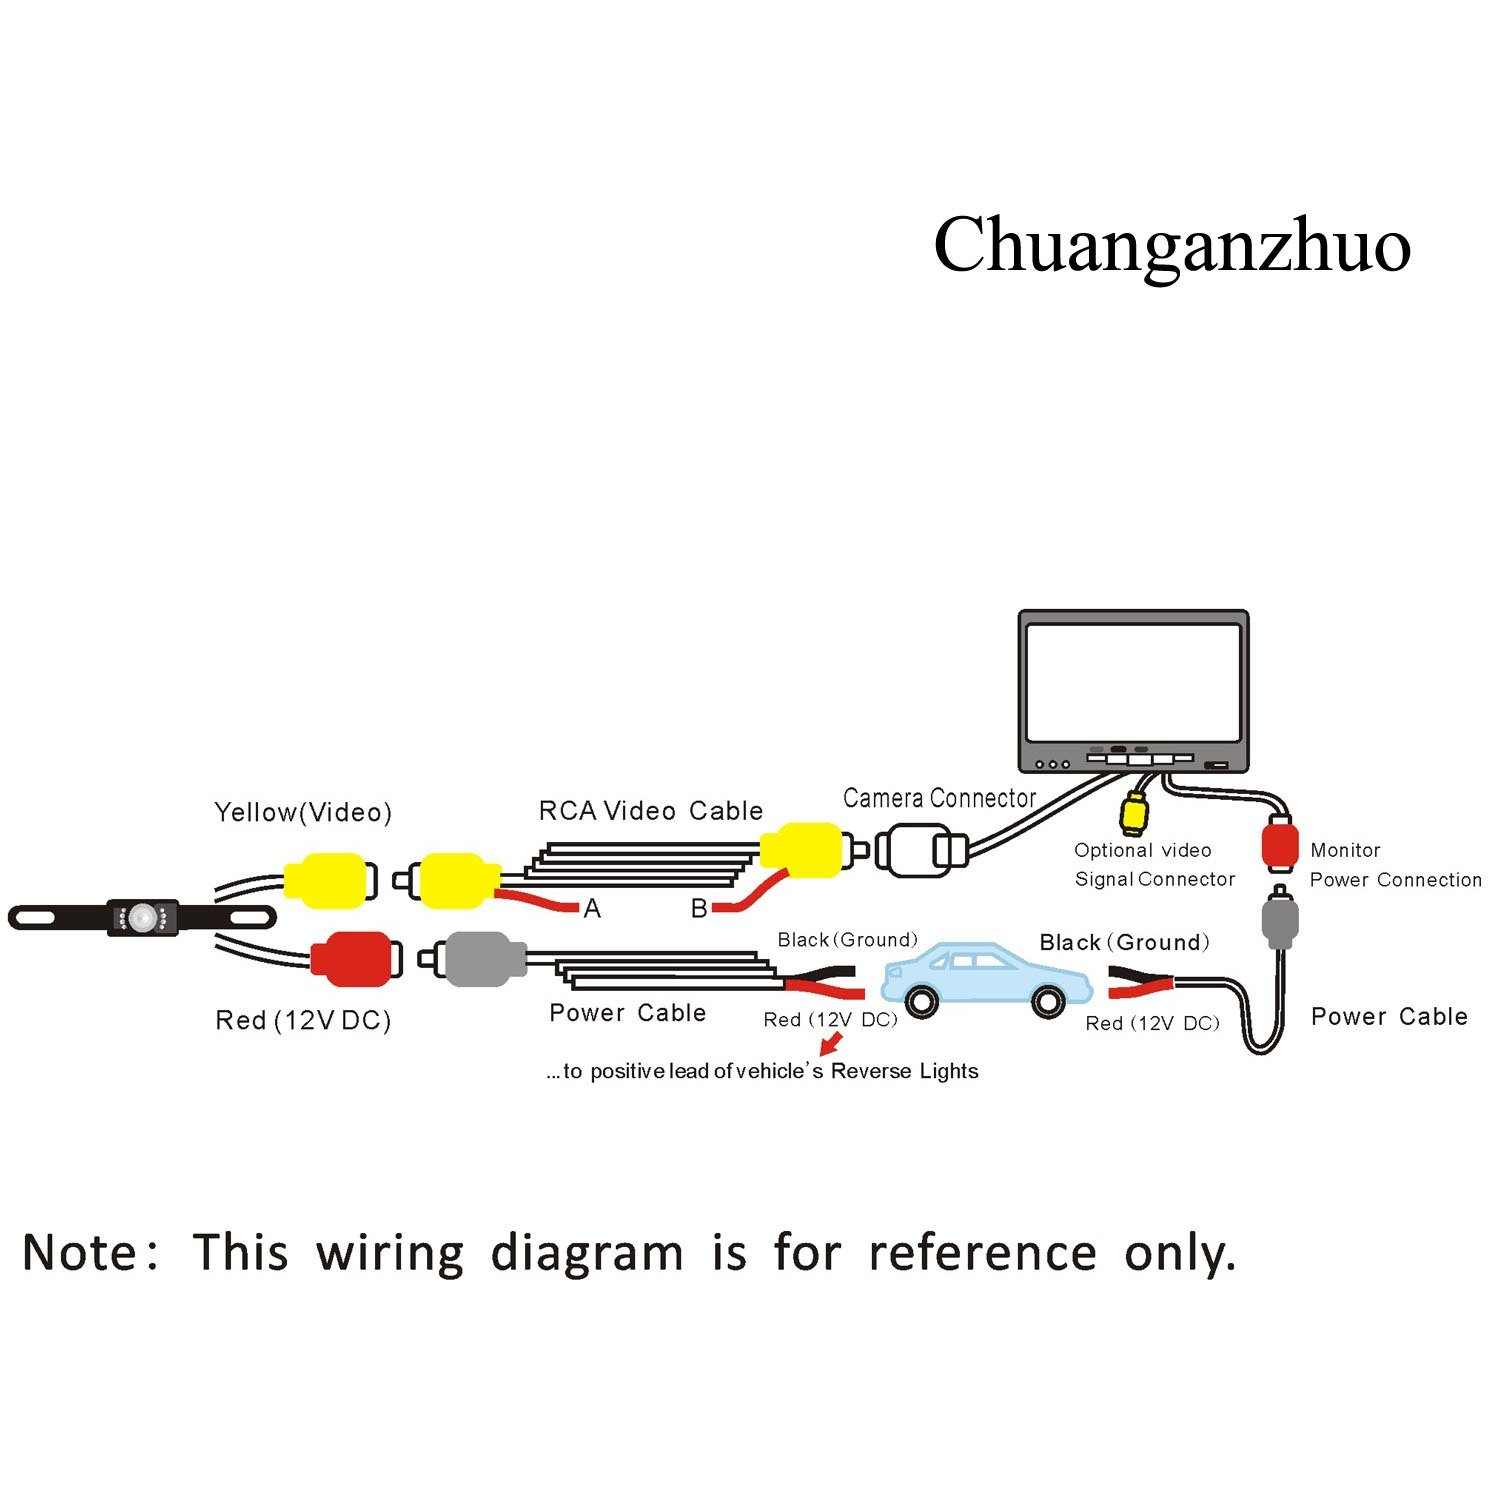 61eN9cMJzuL._SL1500_ amazon com backup camera and monitor kit, chuanganzhuo license car wiring diagrams at mifinder.co